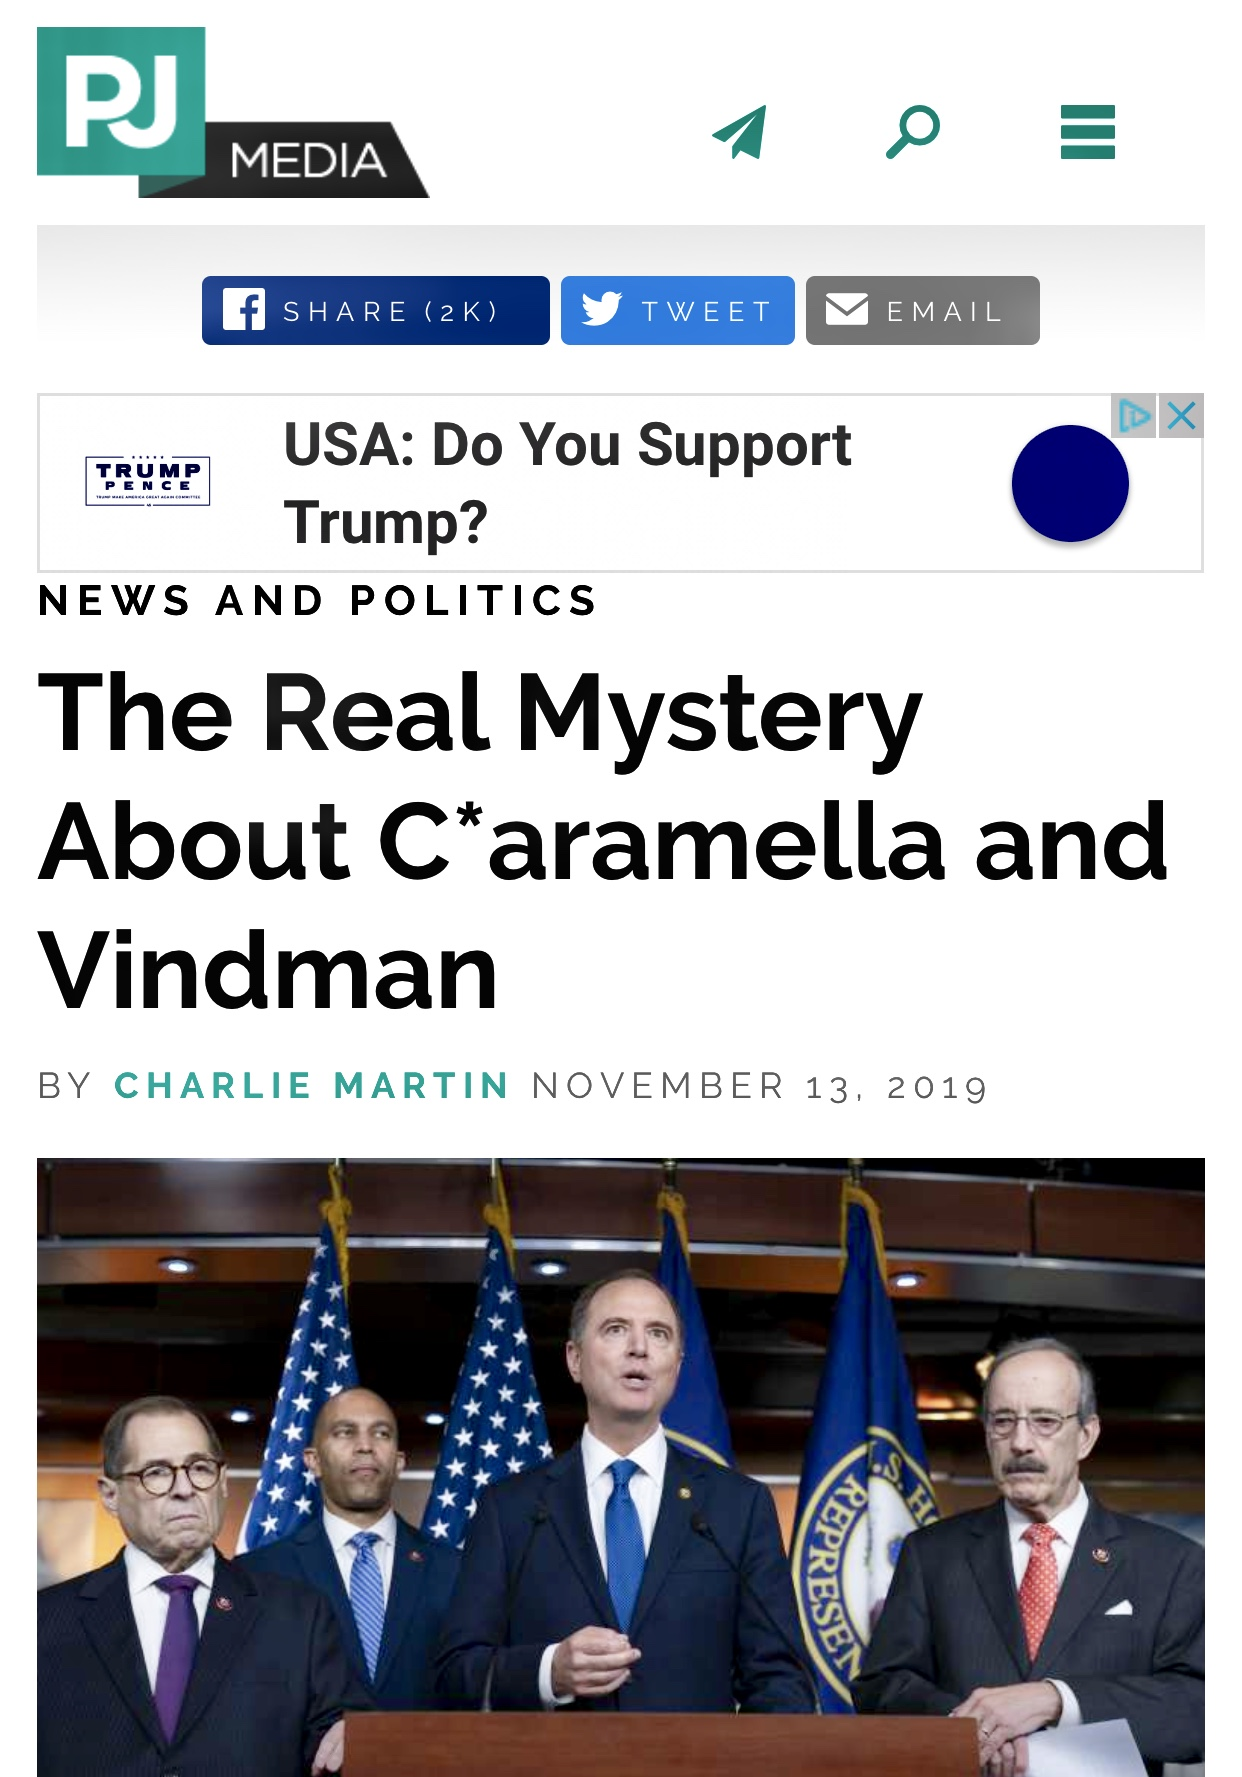 The Real Mystery About Eric Ciaramella Is How He Got Rehired to the CIA